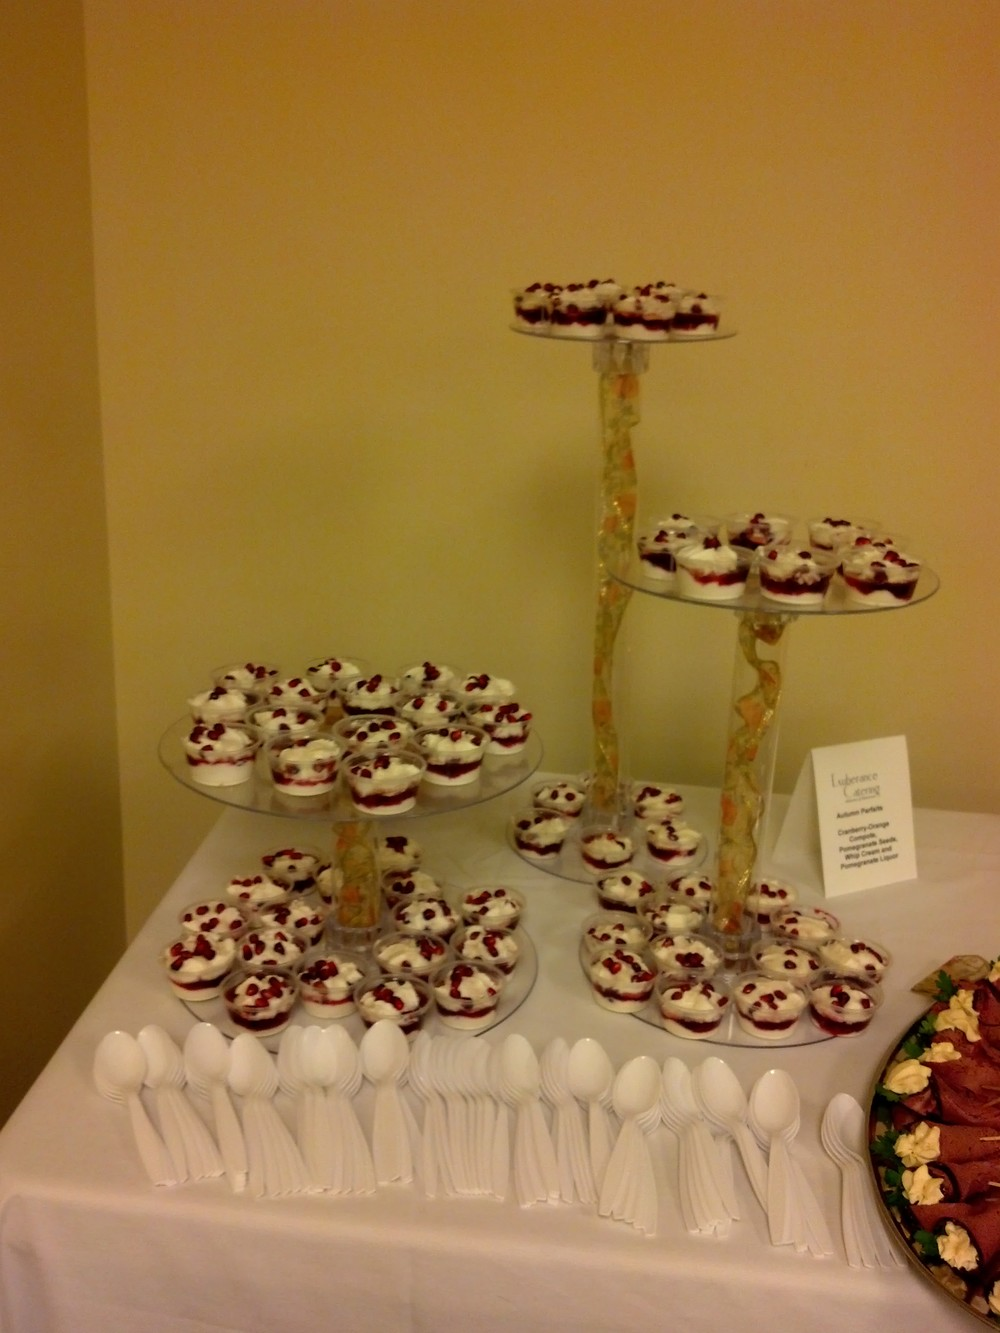 pomegranate parfait display.jpg